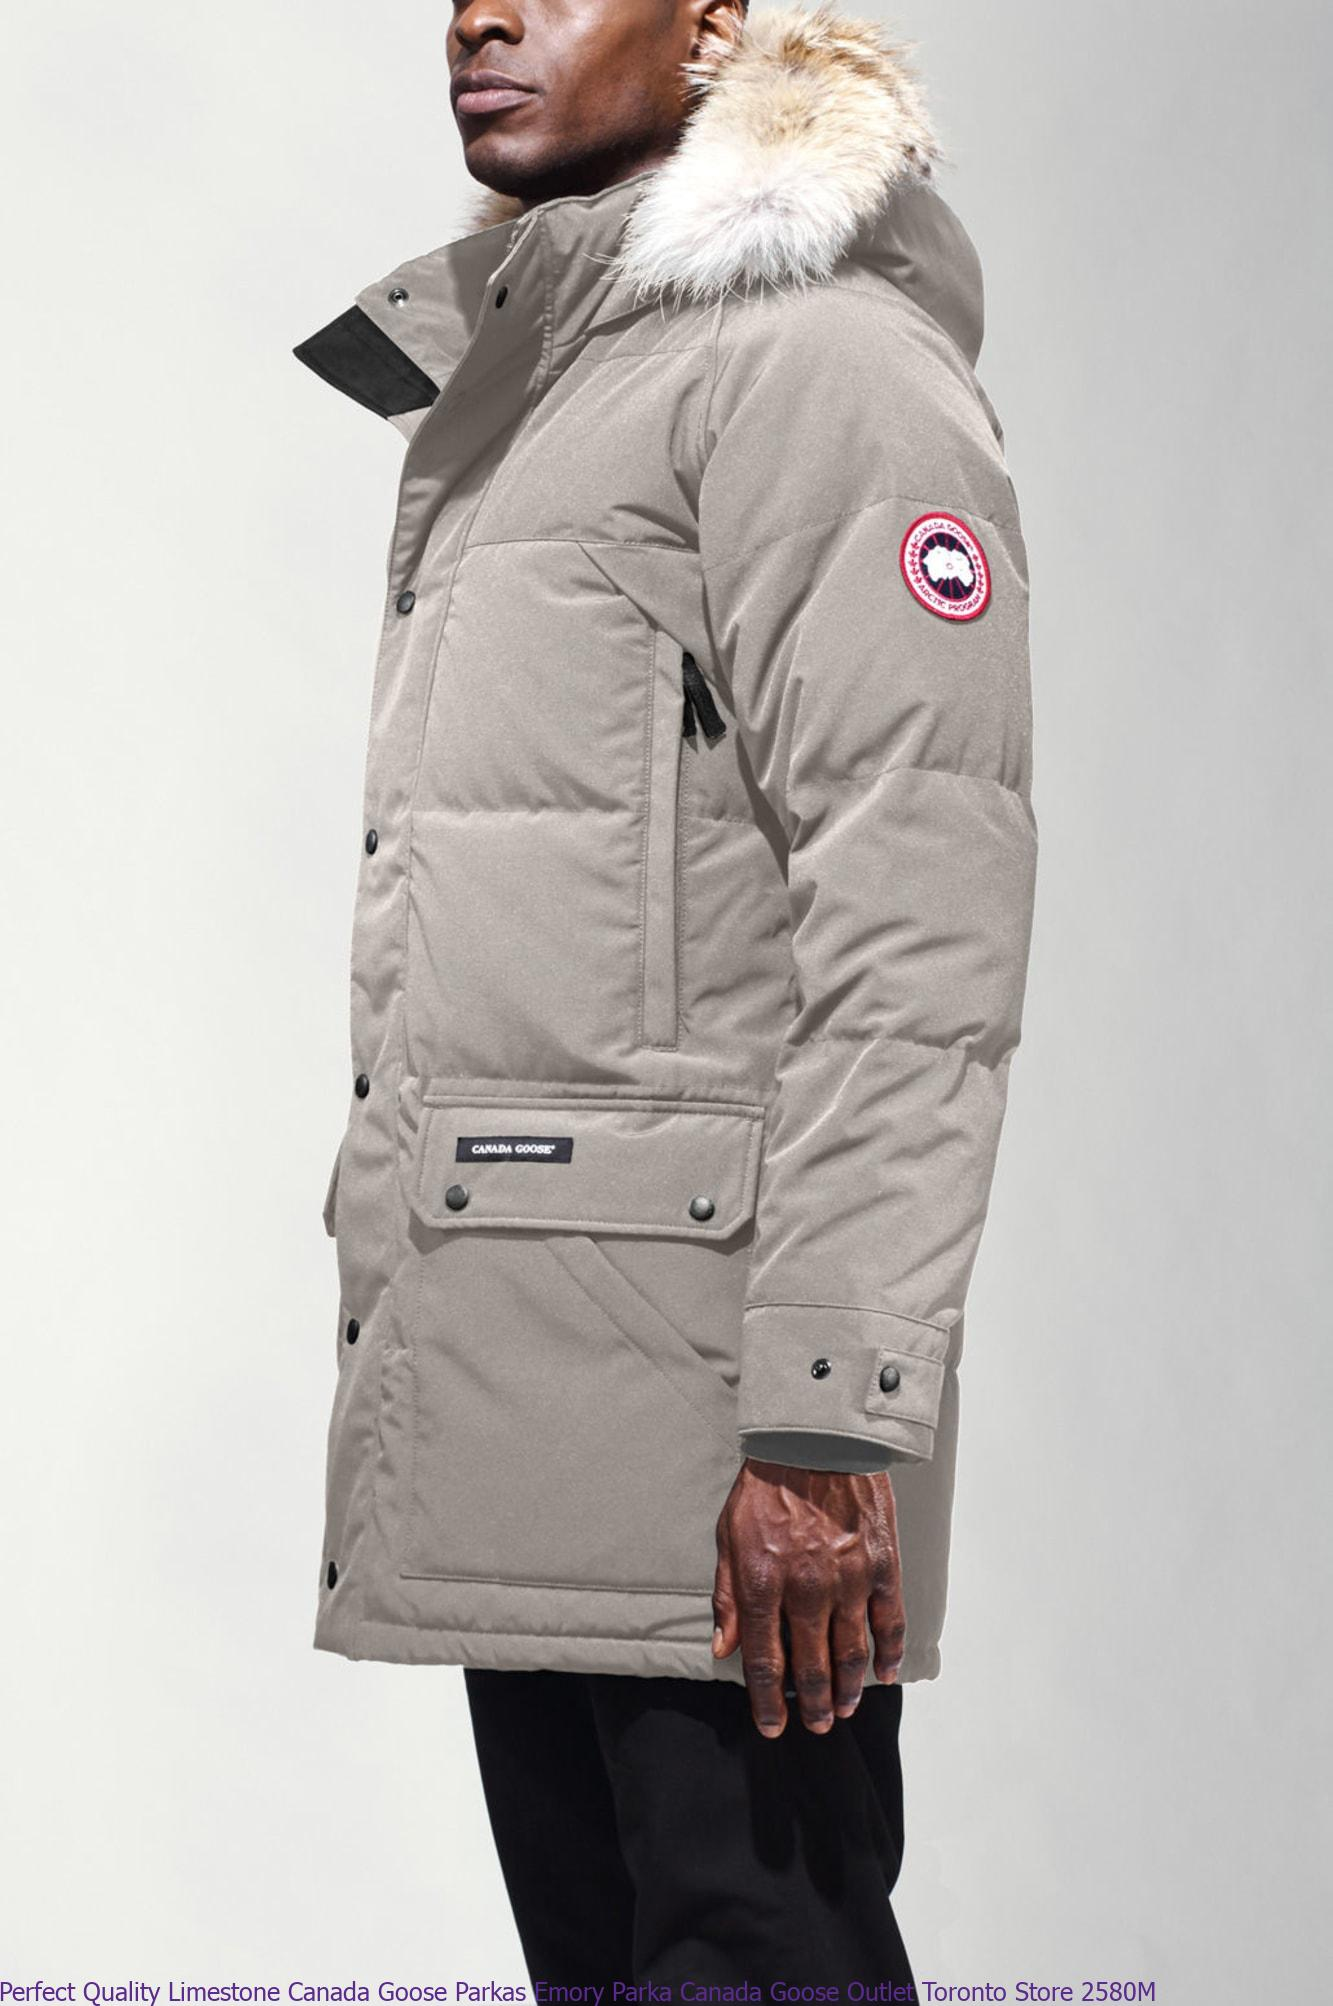 Perfect Quality Limestone Canada Goose Parkas Emory Parka Canada Goose Outlet Toronto Store 2580M